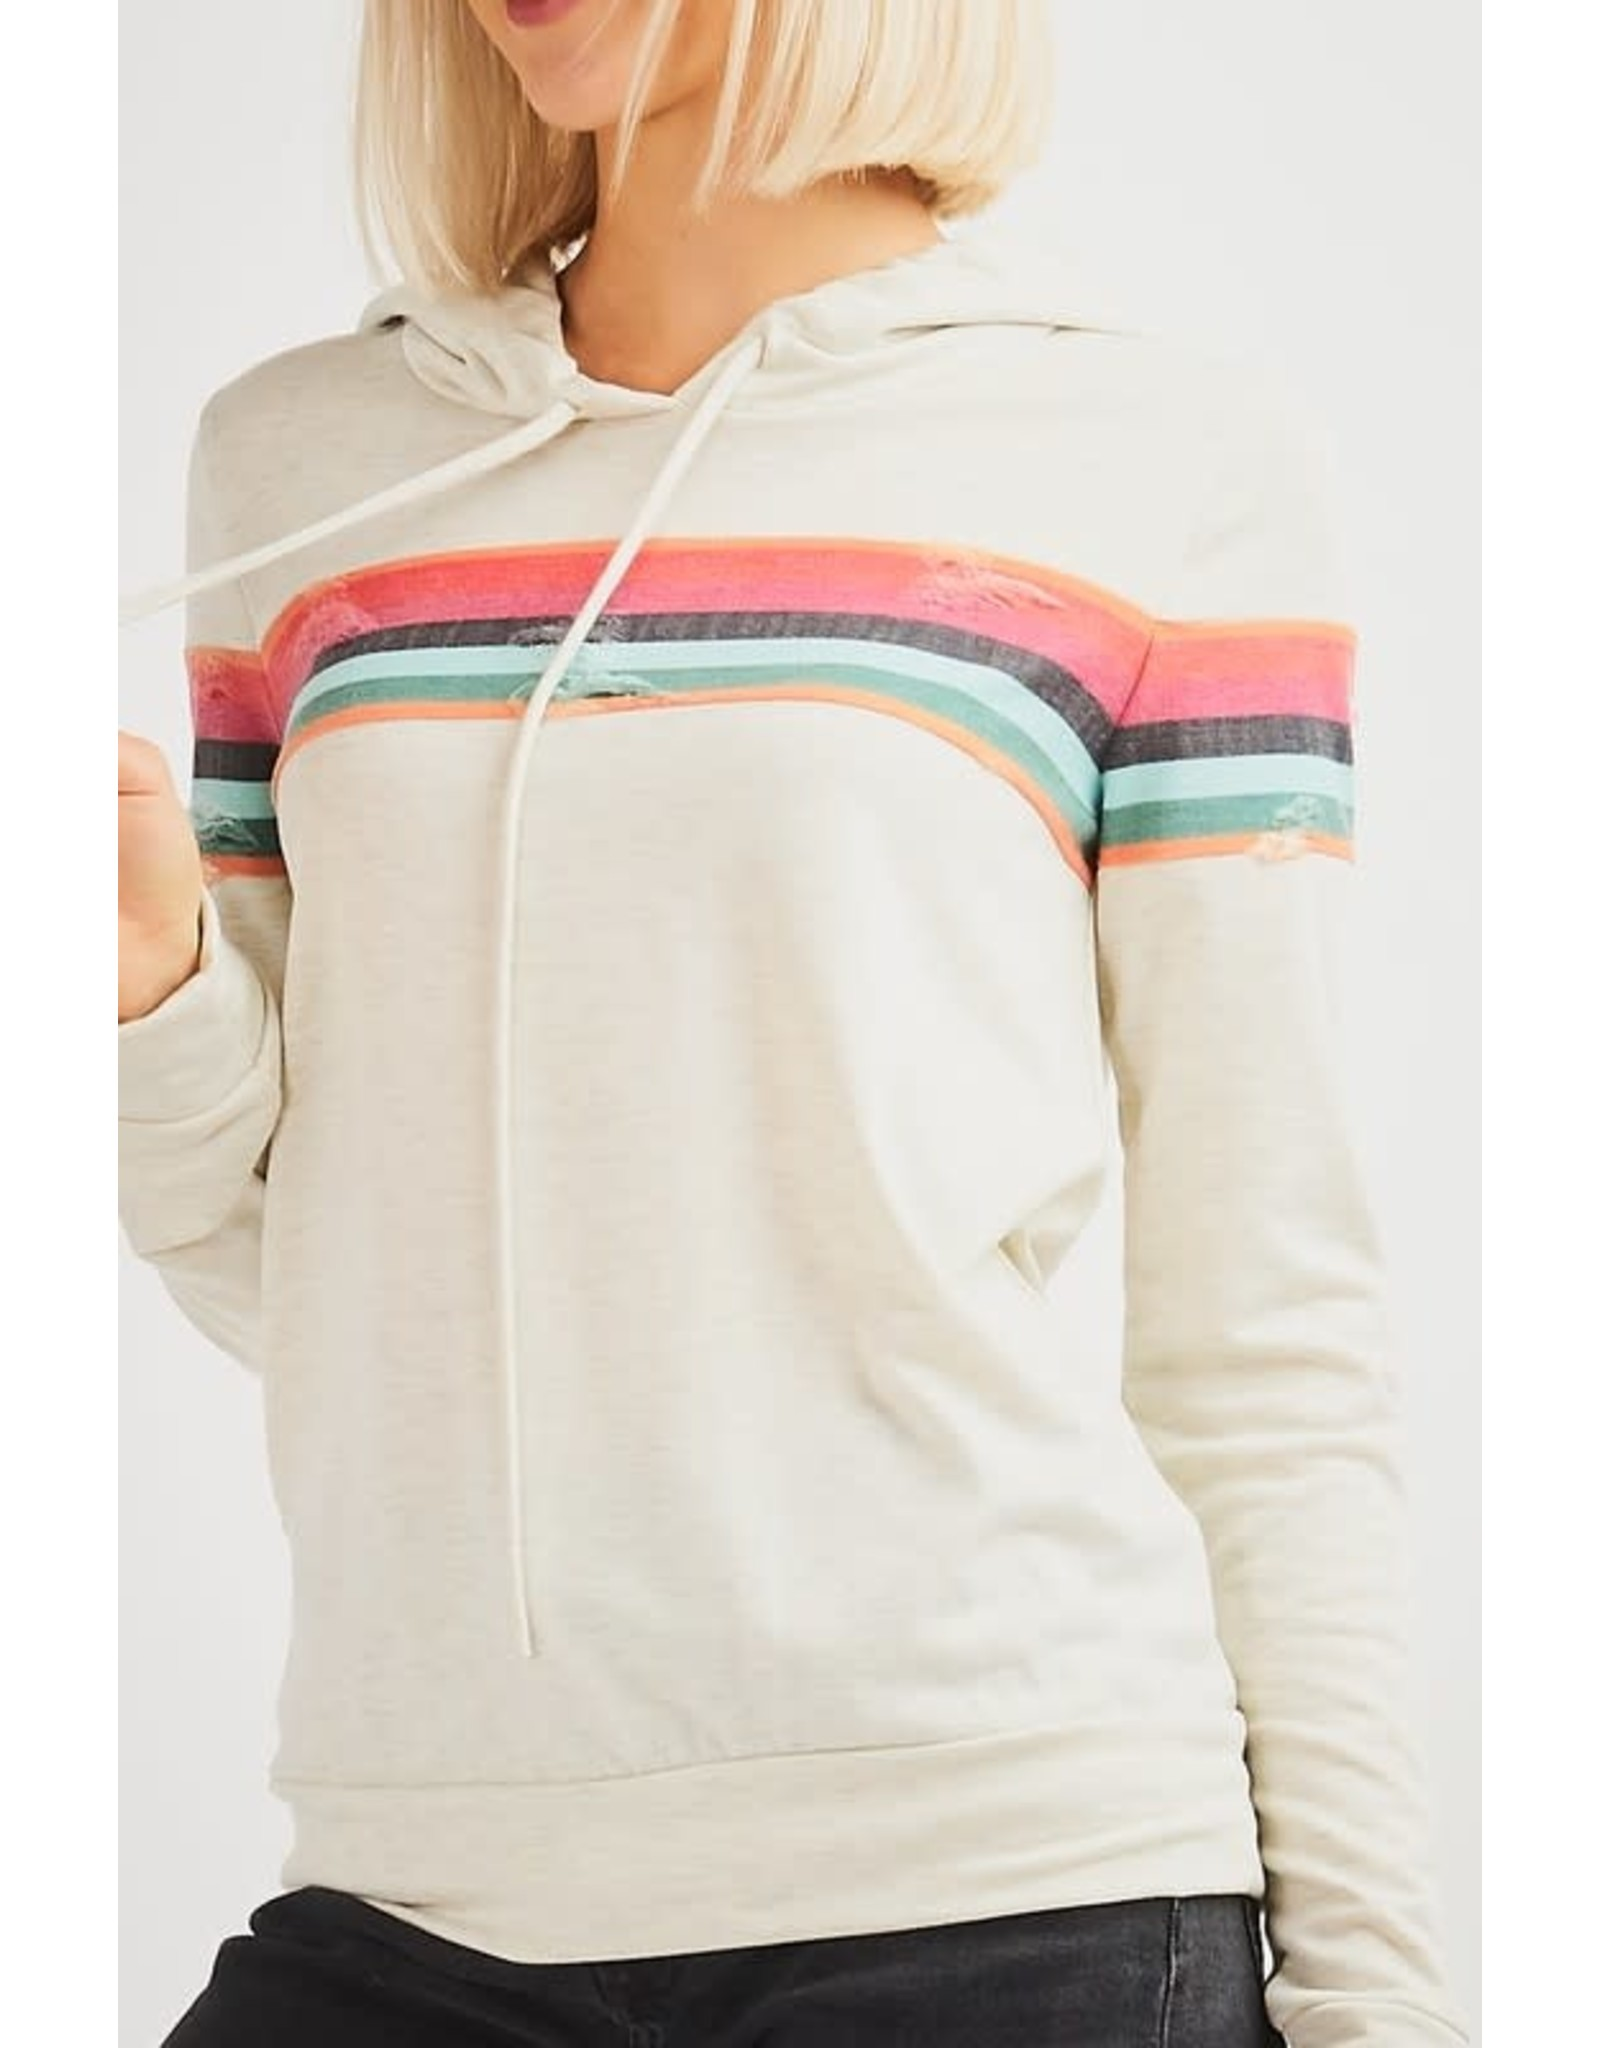 TLC DISTRESSED RAINBOW HOODIE